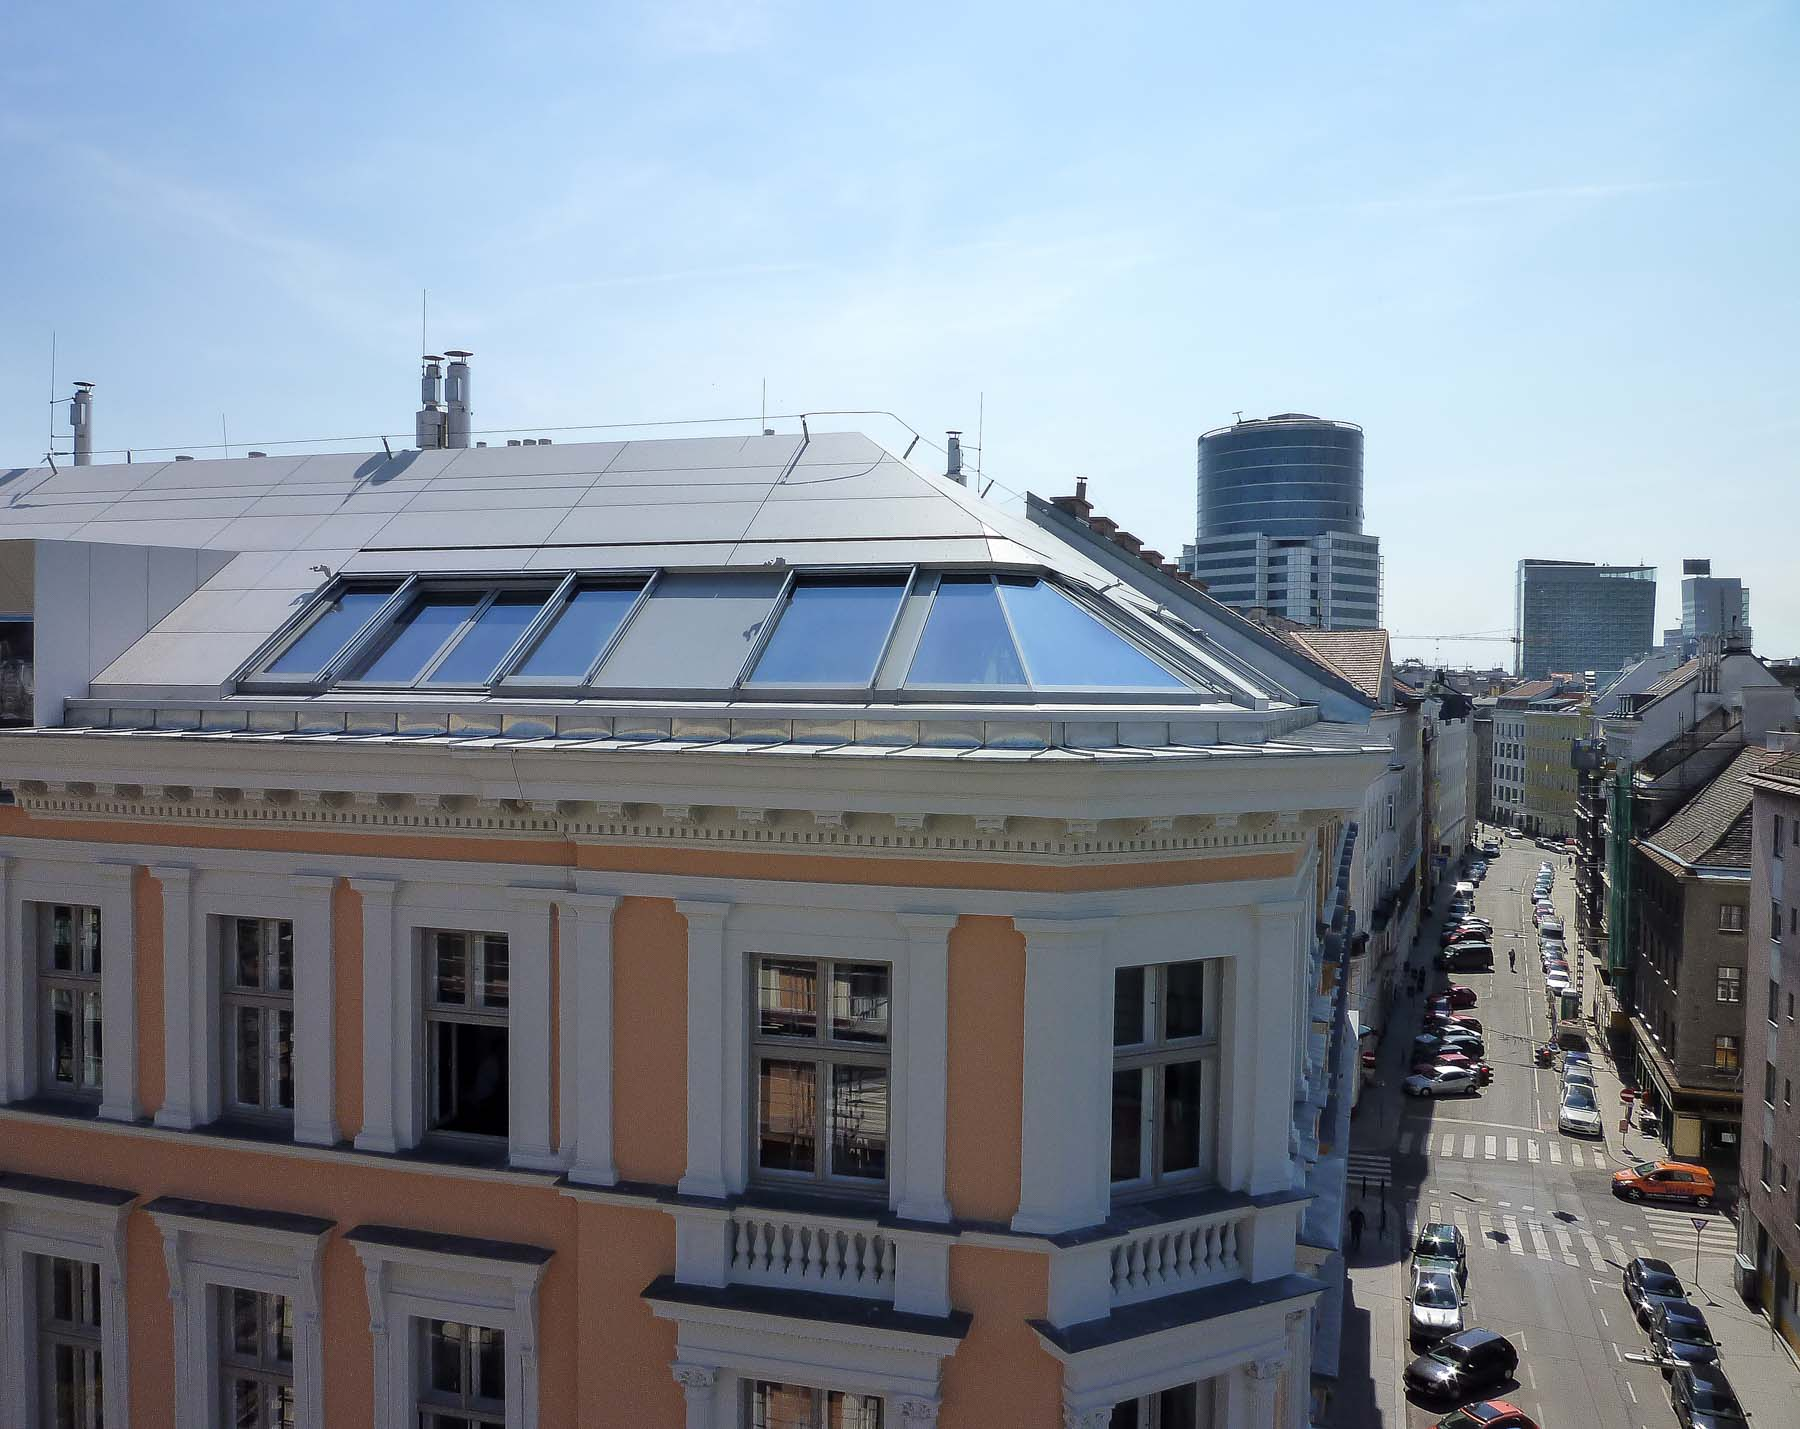 Cockpitverglasung mit Panorama Dachfenster in Wien (Objekt 1113).